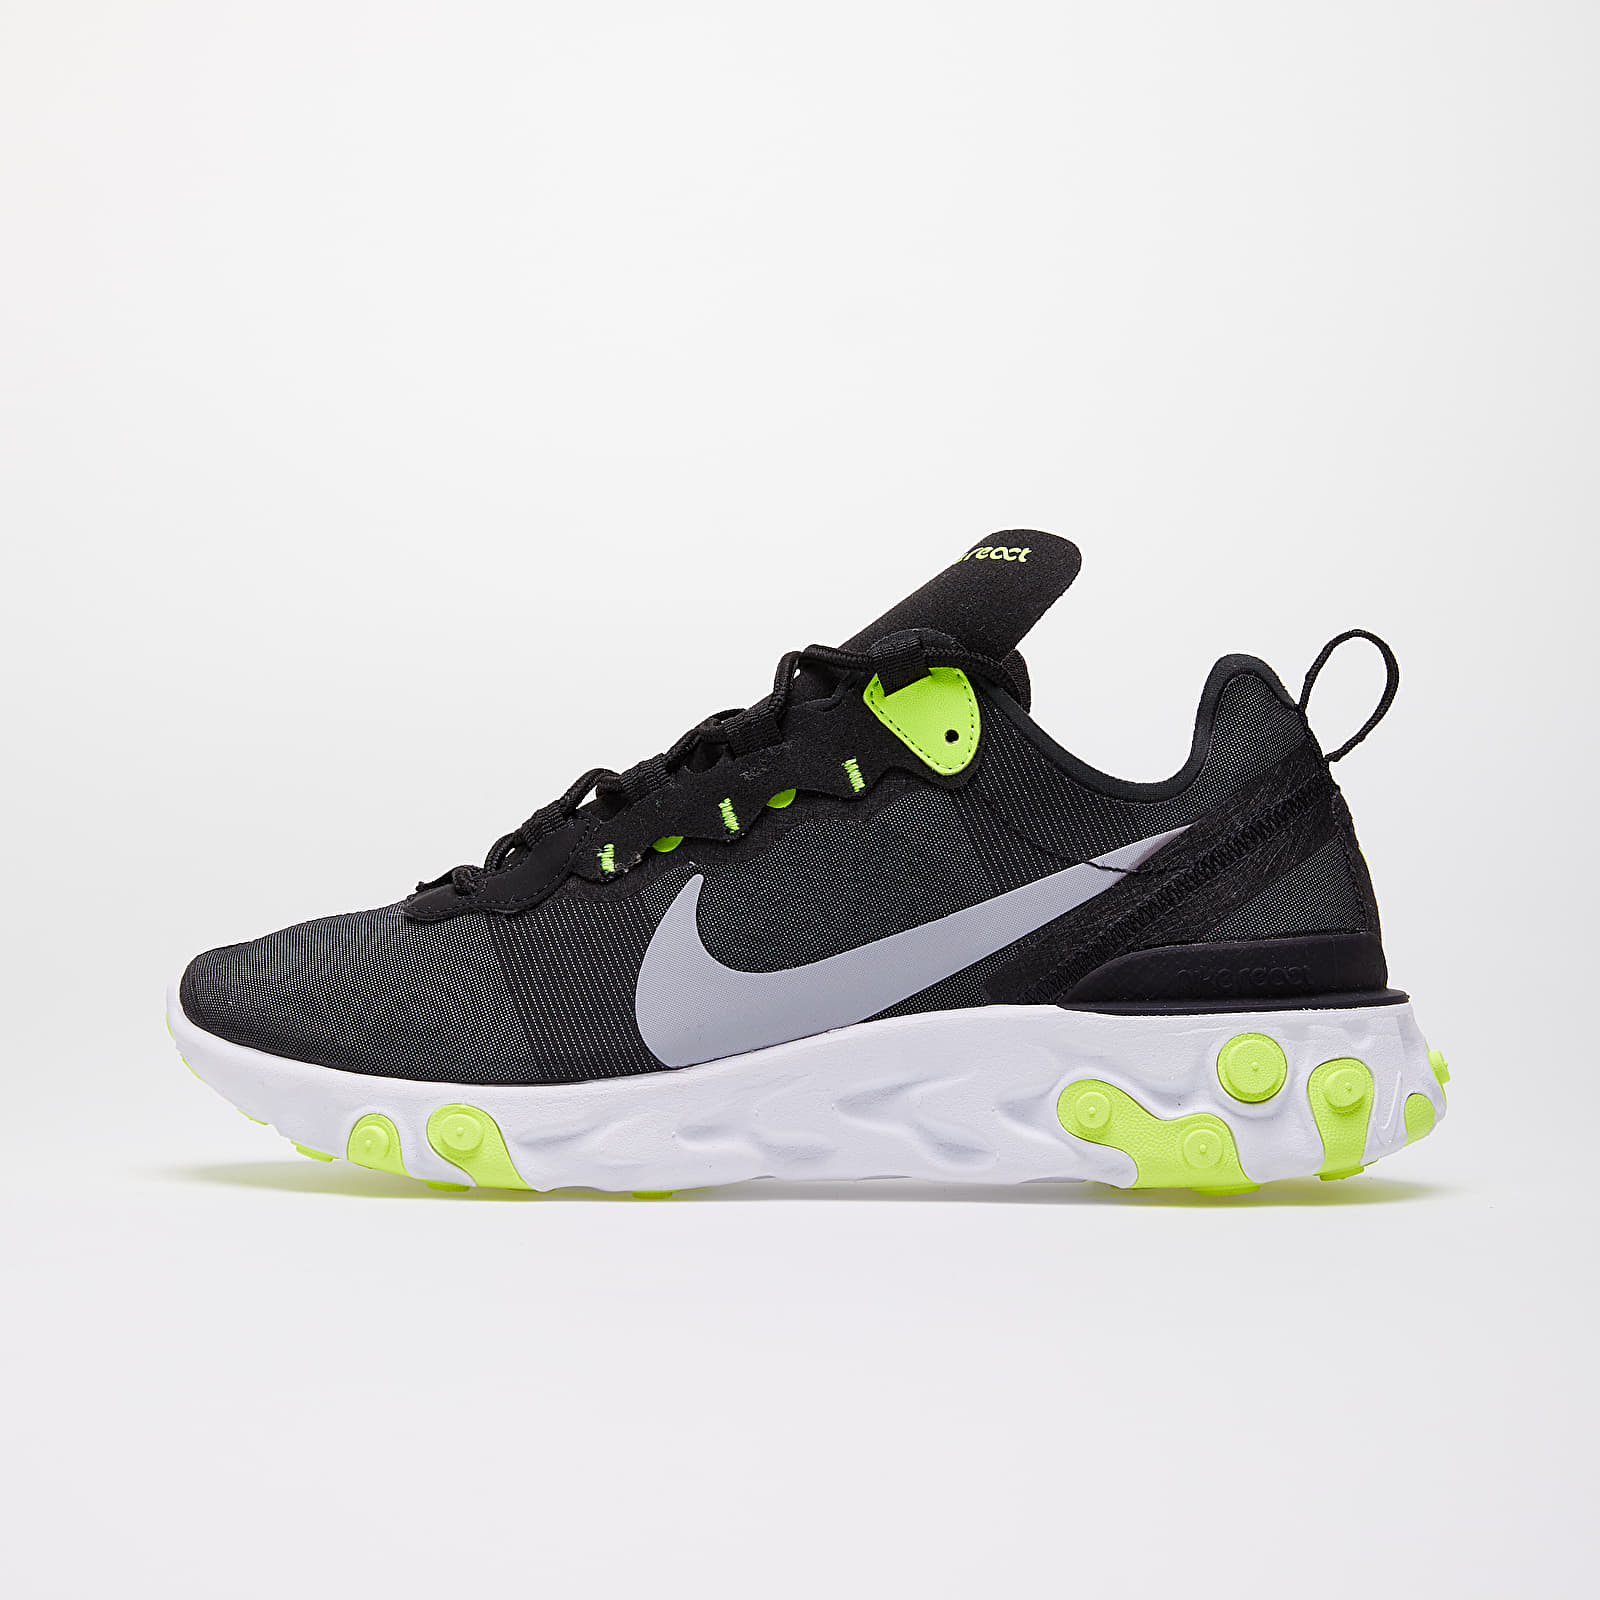 Women's shoes Nike React Element 55 Wmns Black/ Wolf Grey-Volt-Cool Grey